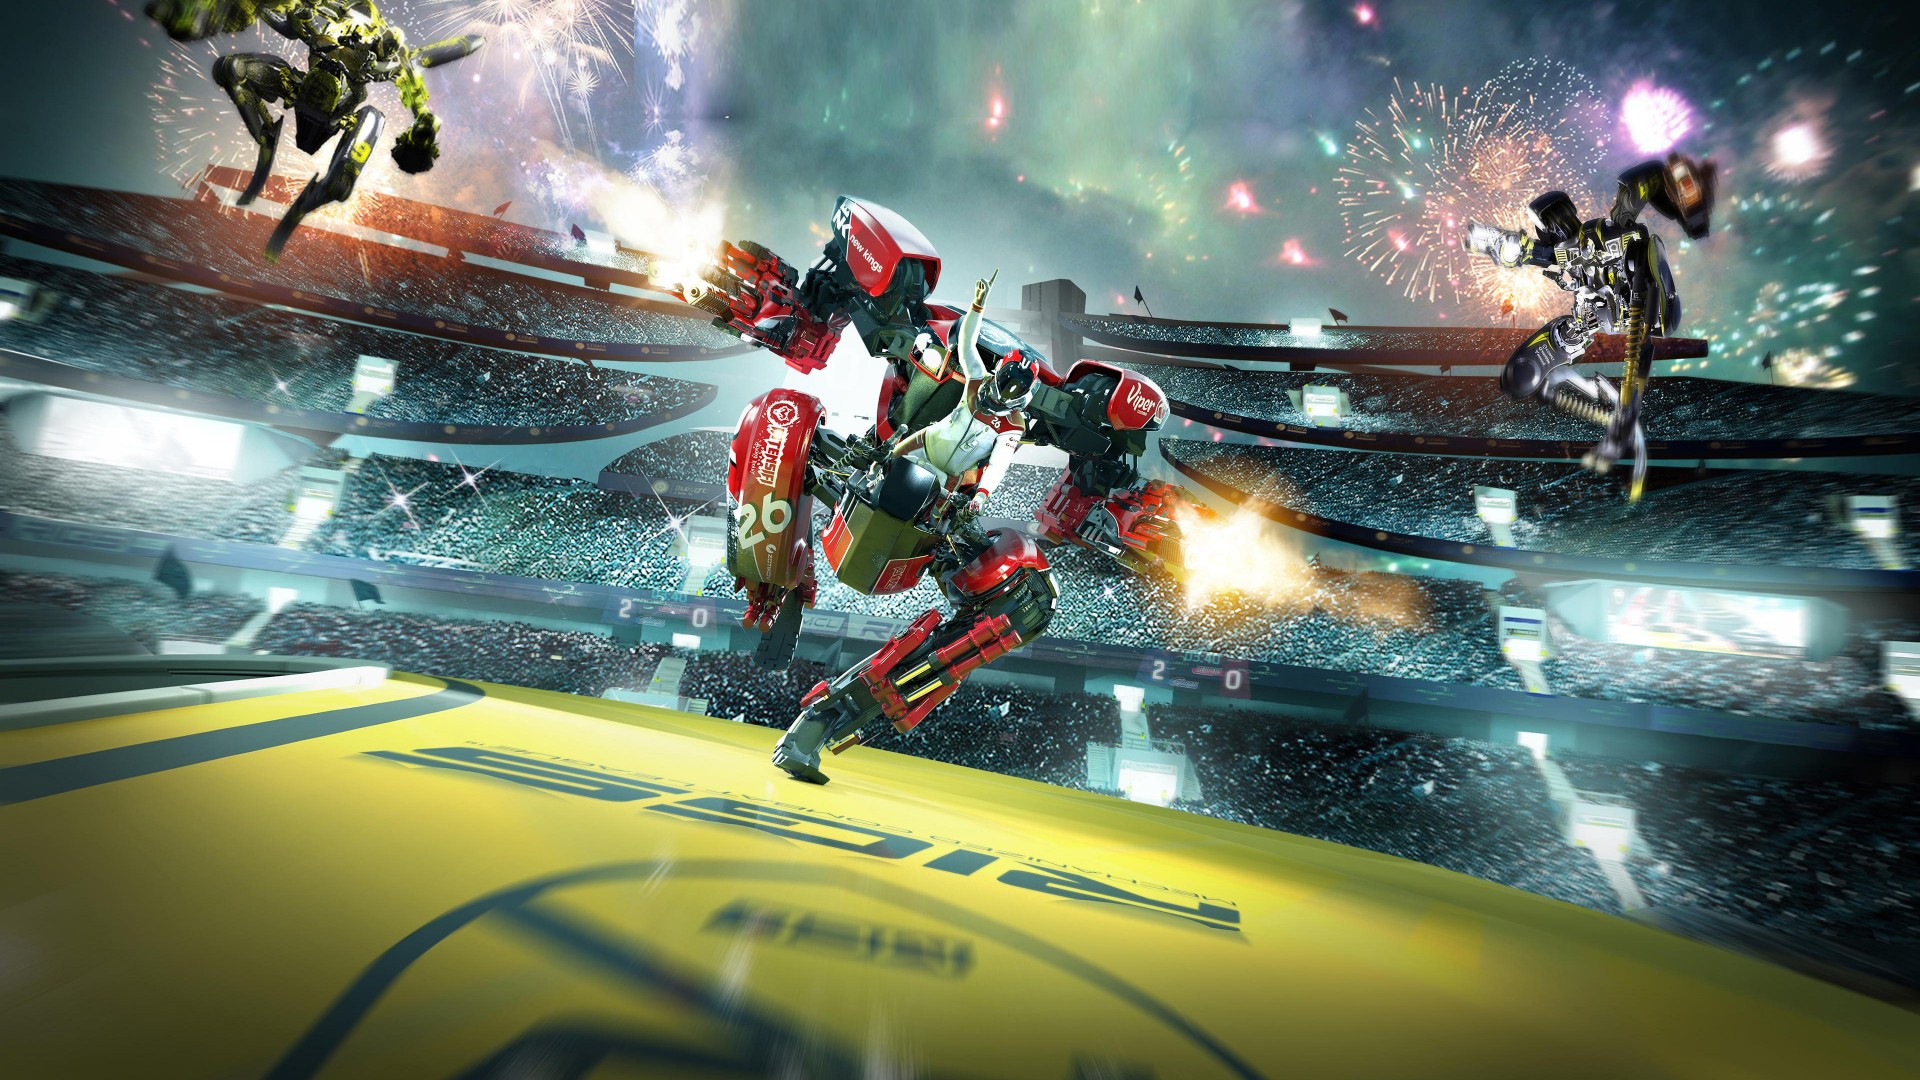 Prototype Cars Wallpapers Rigs Mechanized Combat League Vr Game 4k Wallpapers Hd